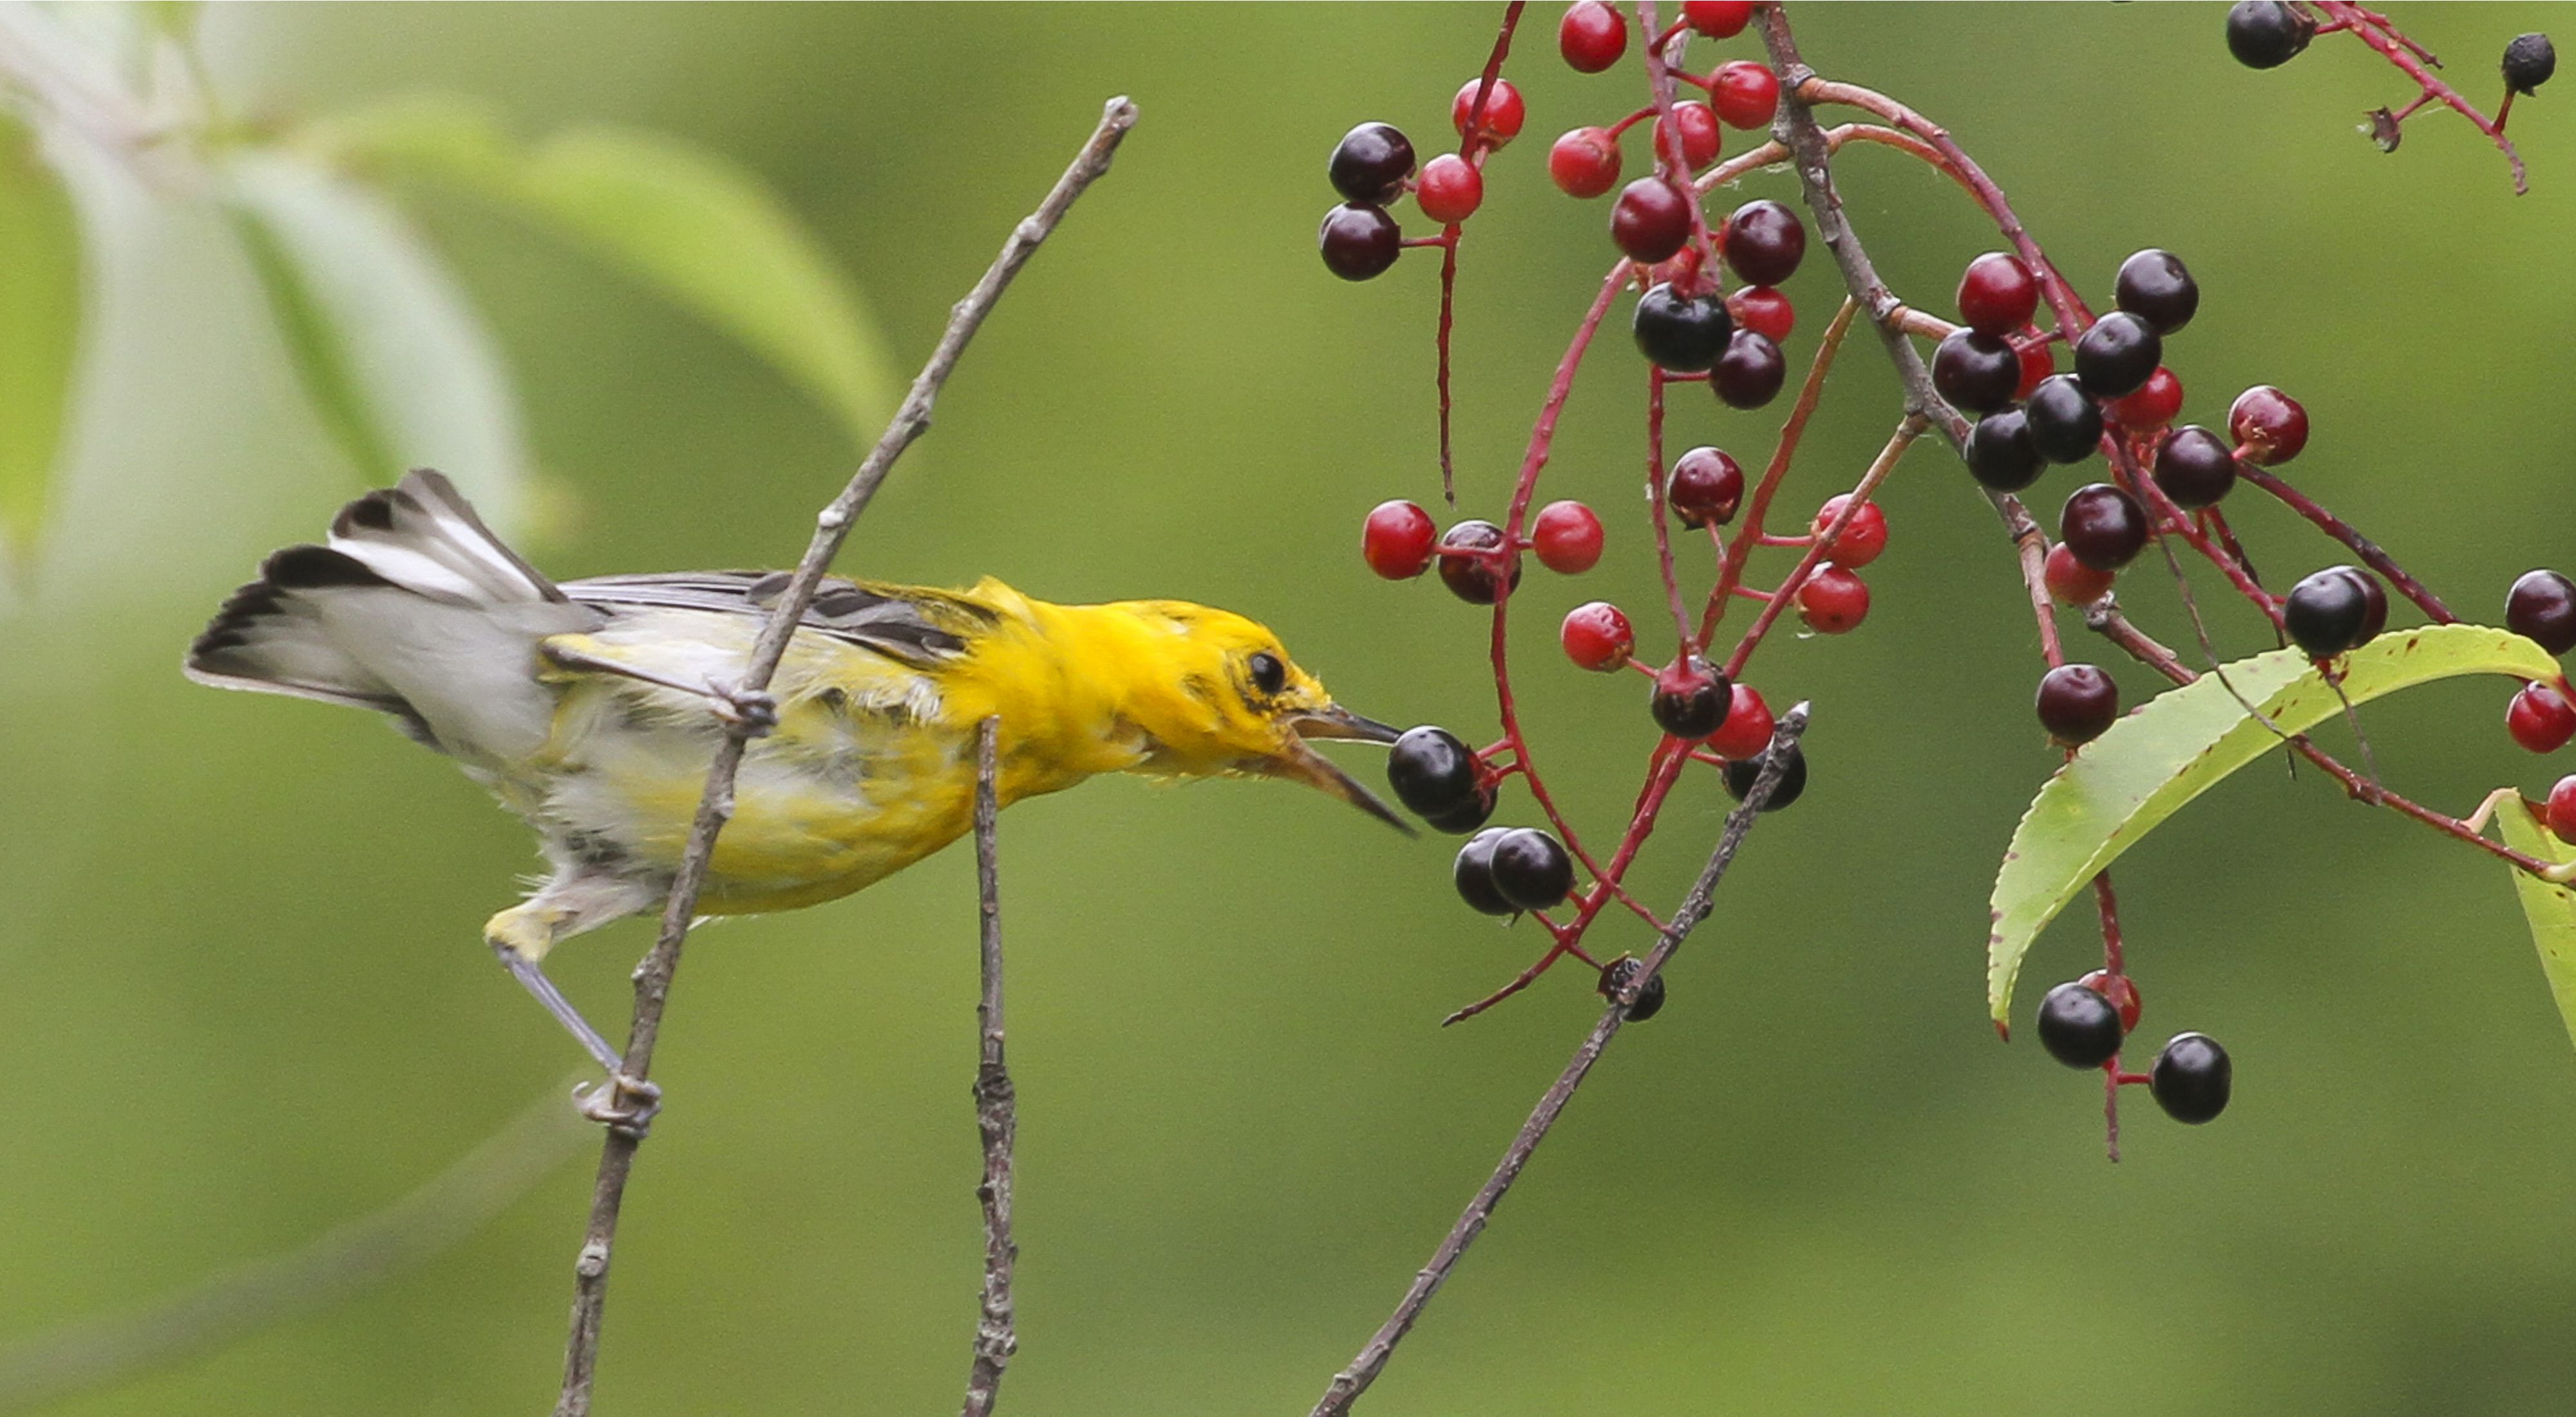 A yellow bird bites at blue and red berries in a forest.